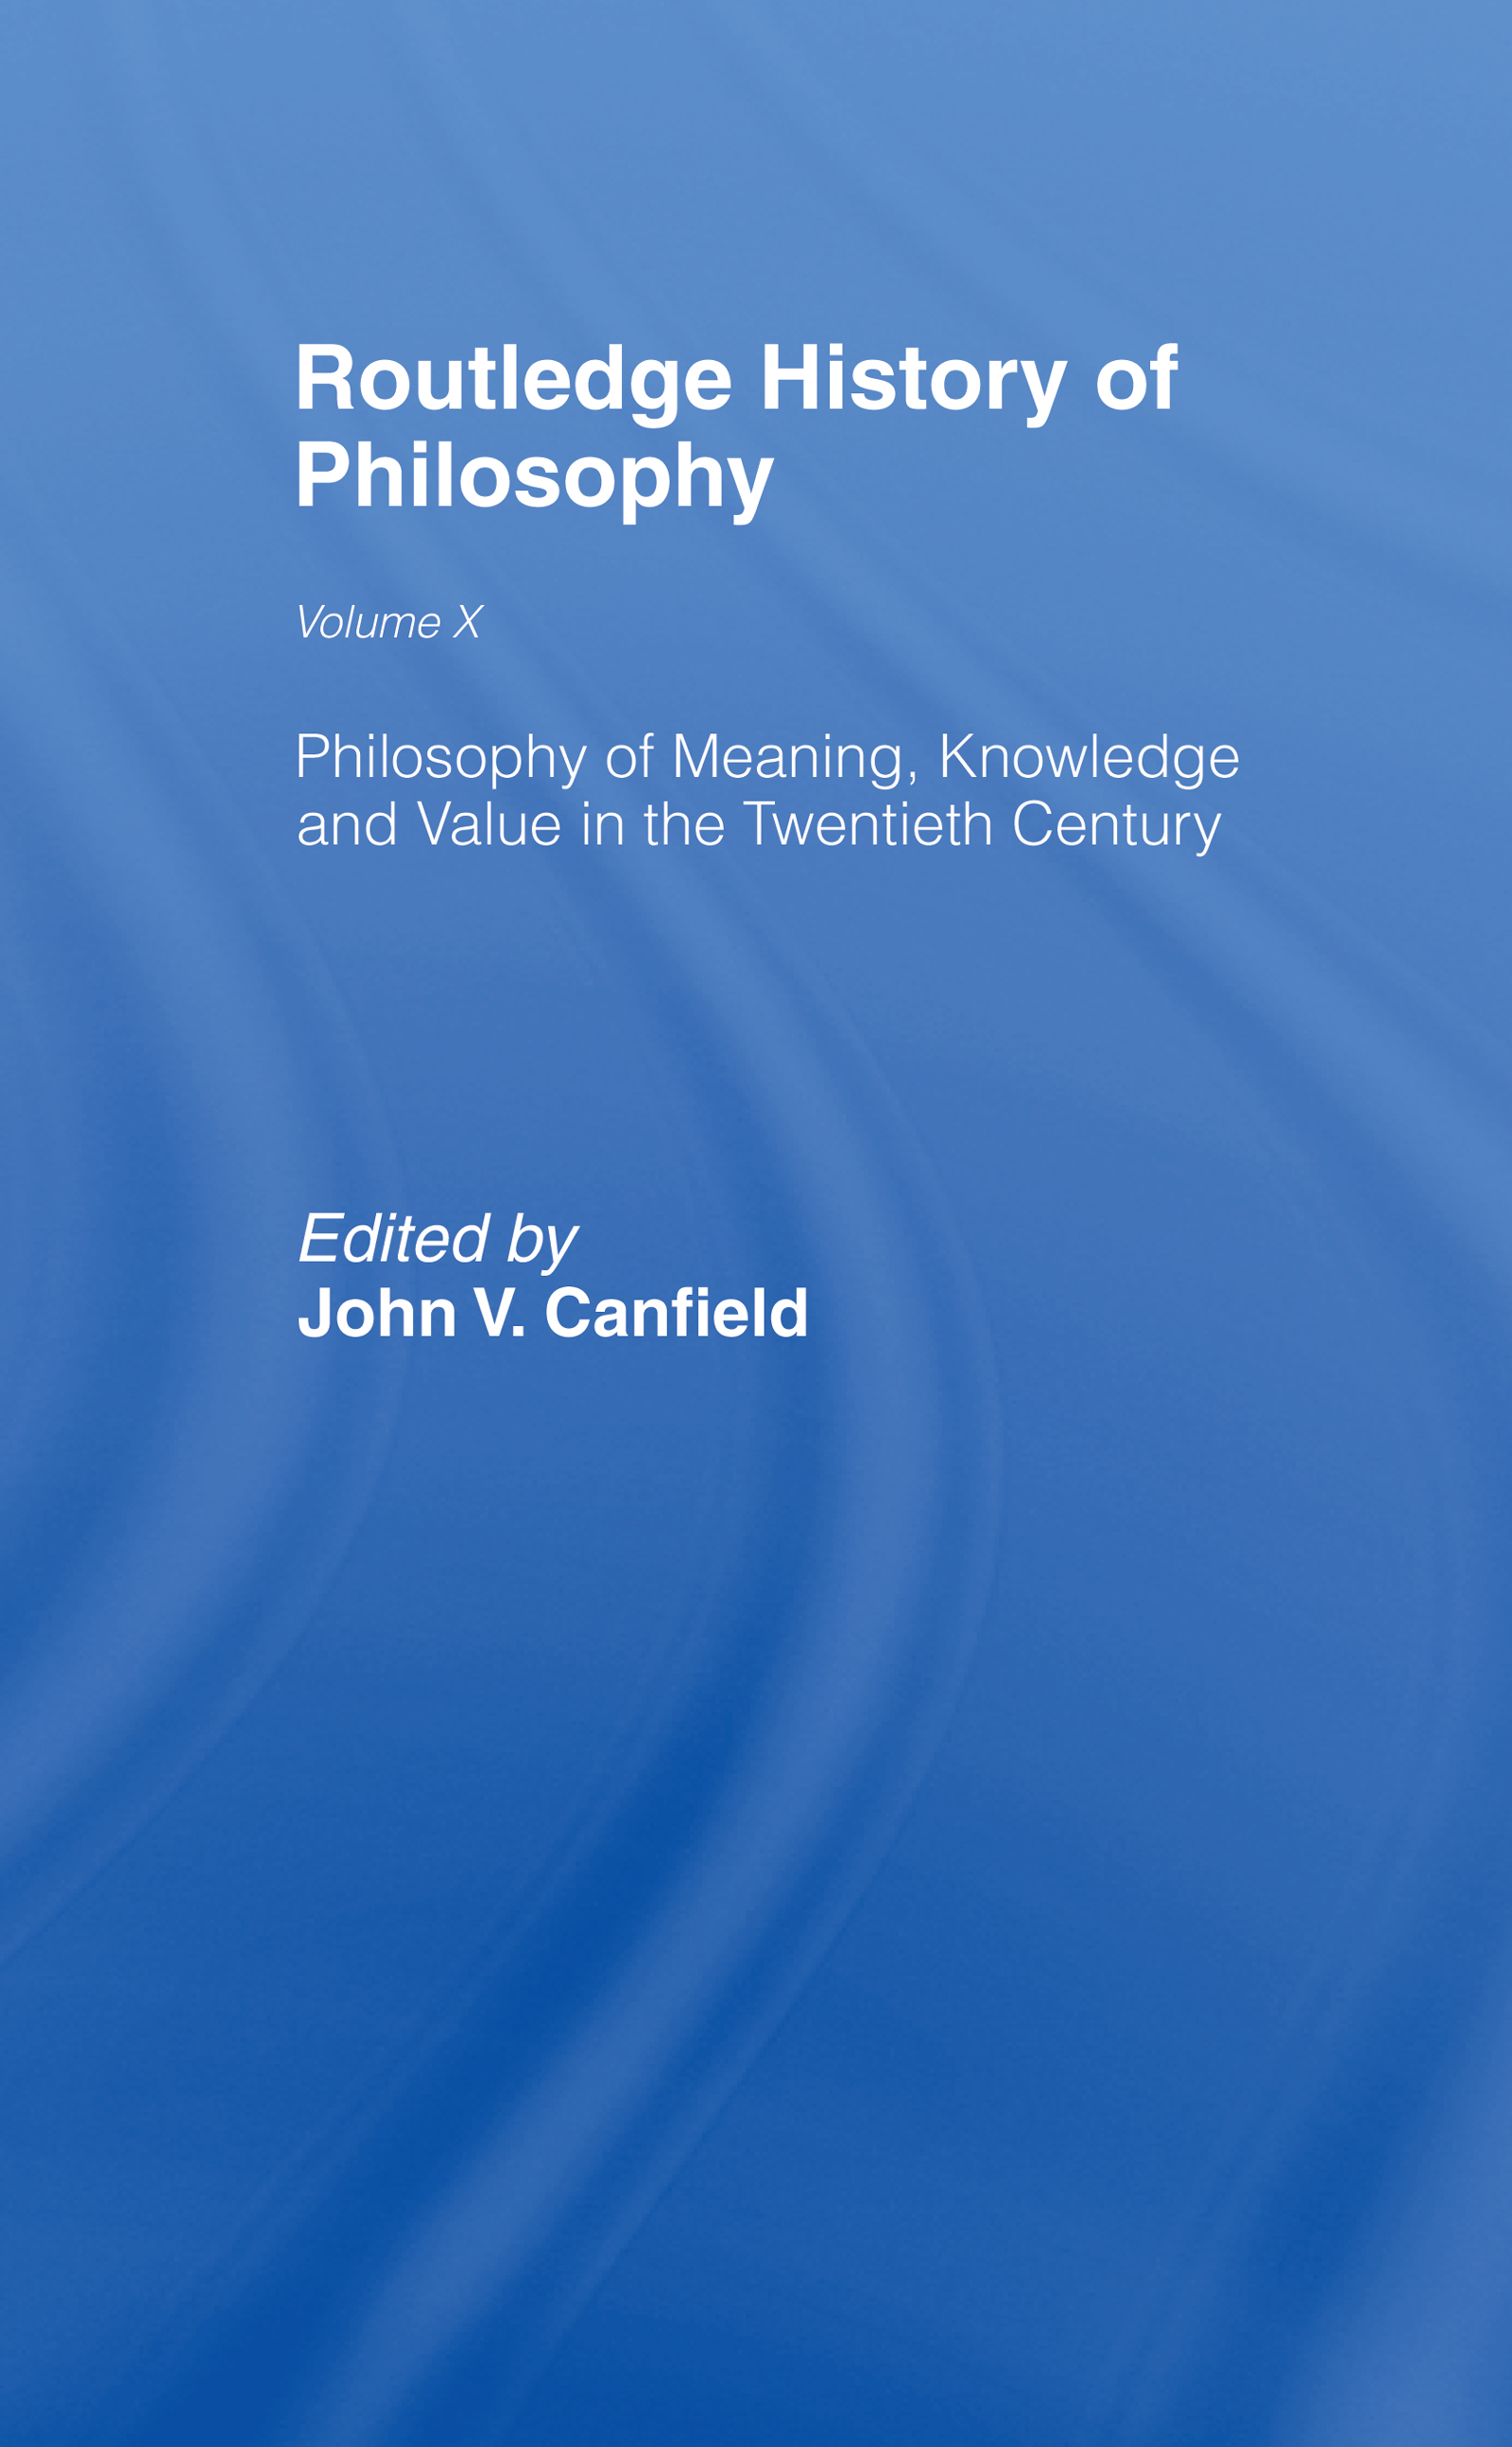 Philosophy of Meaning, Knowledge and Value in the Twentieth Century